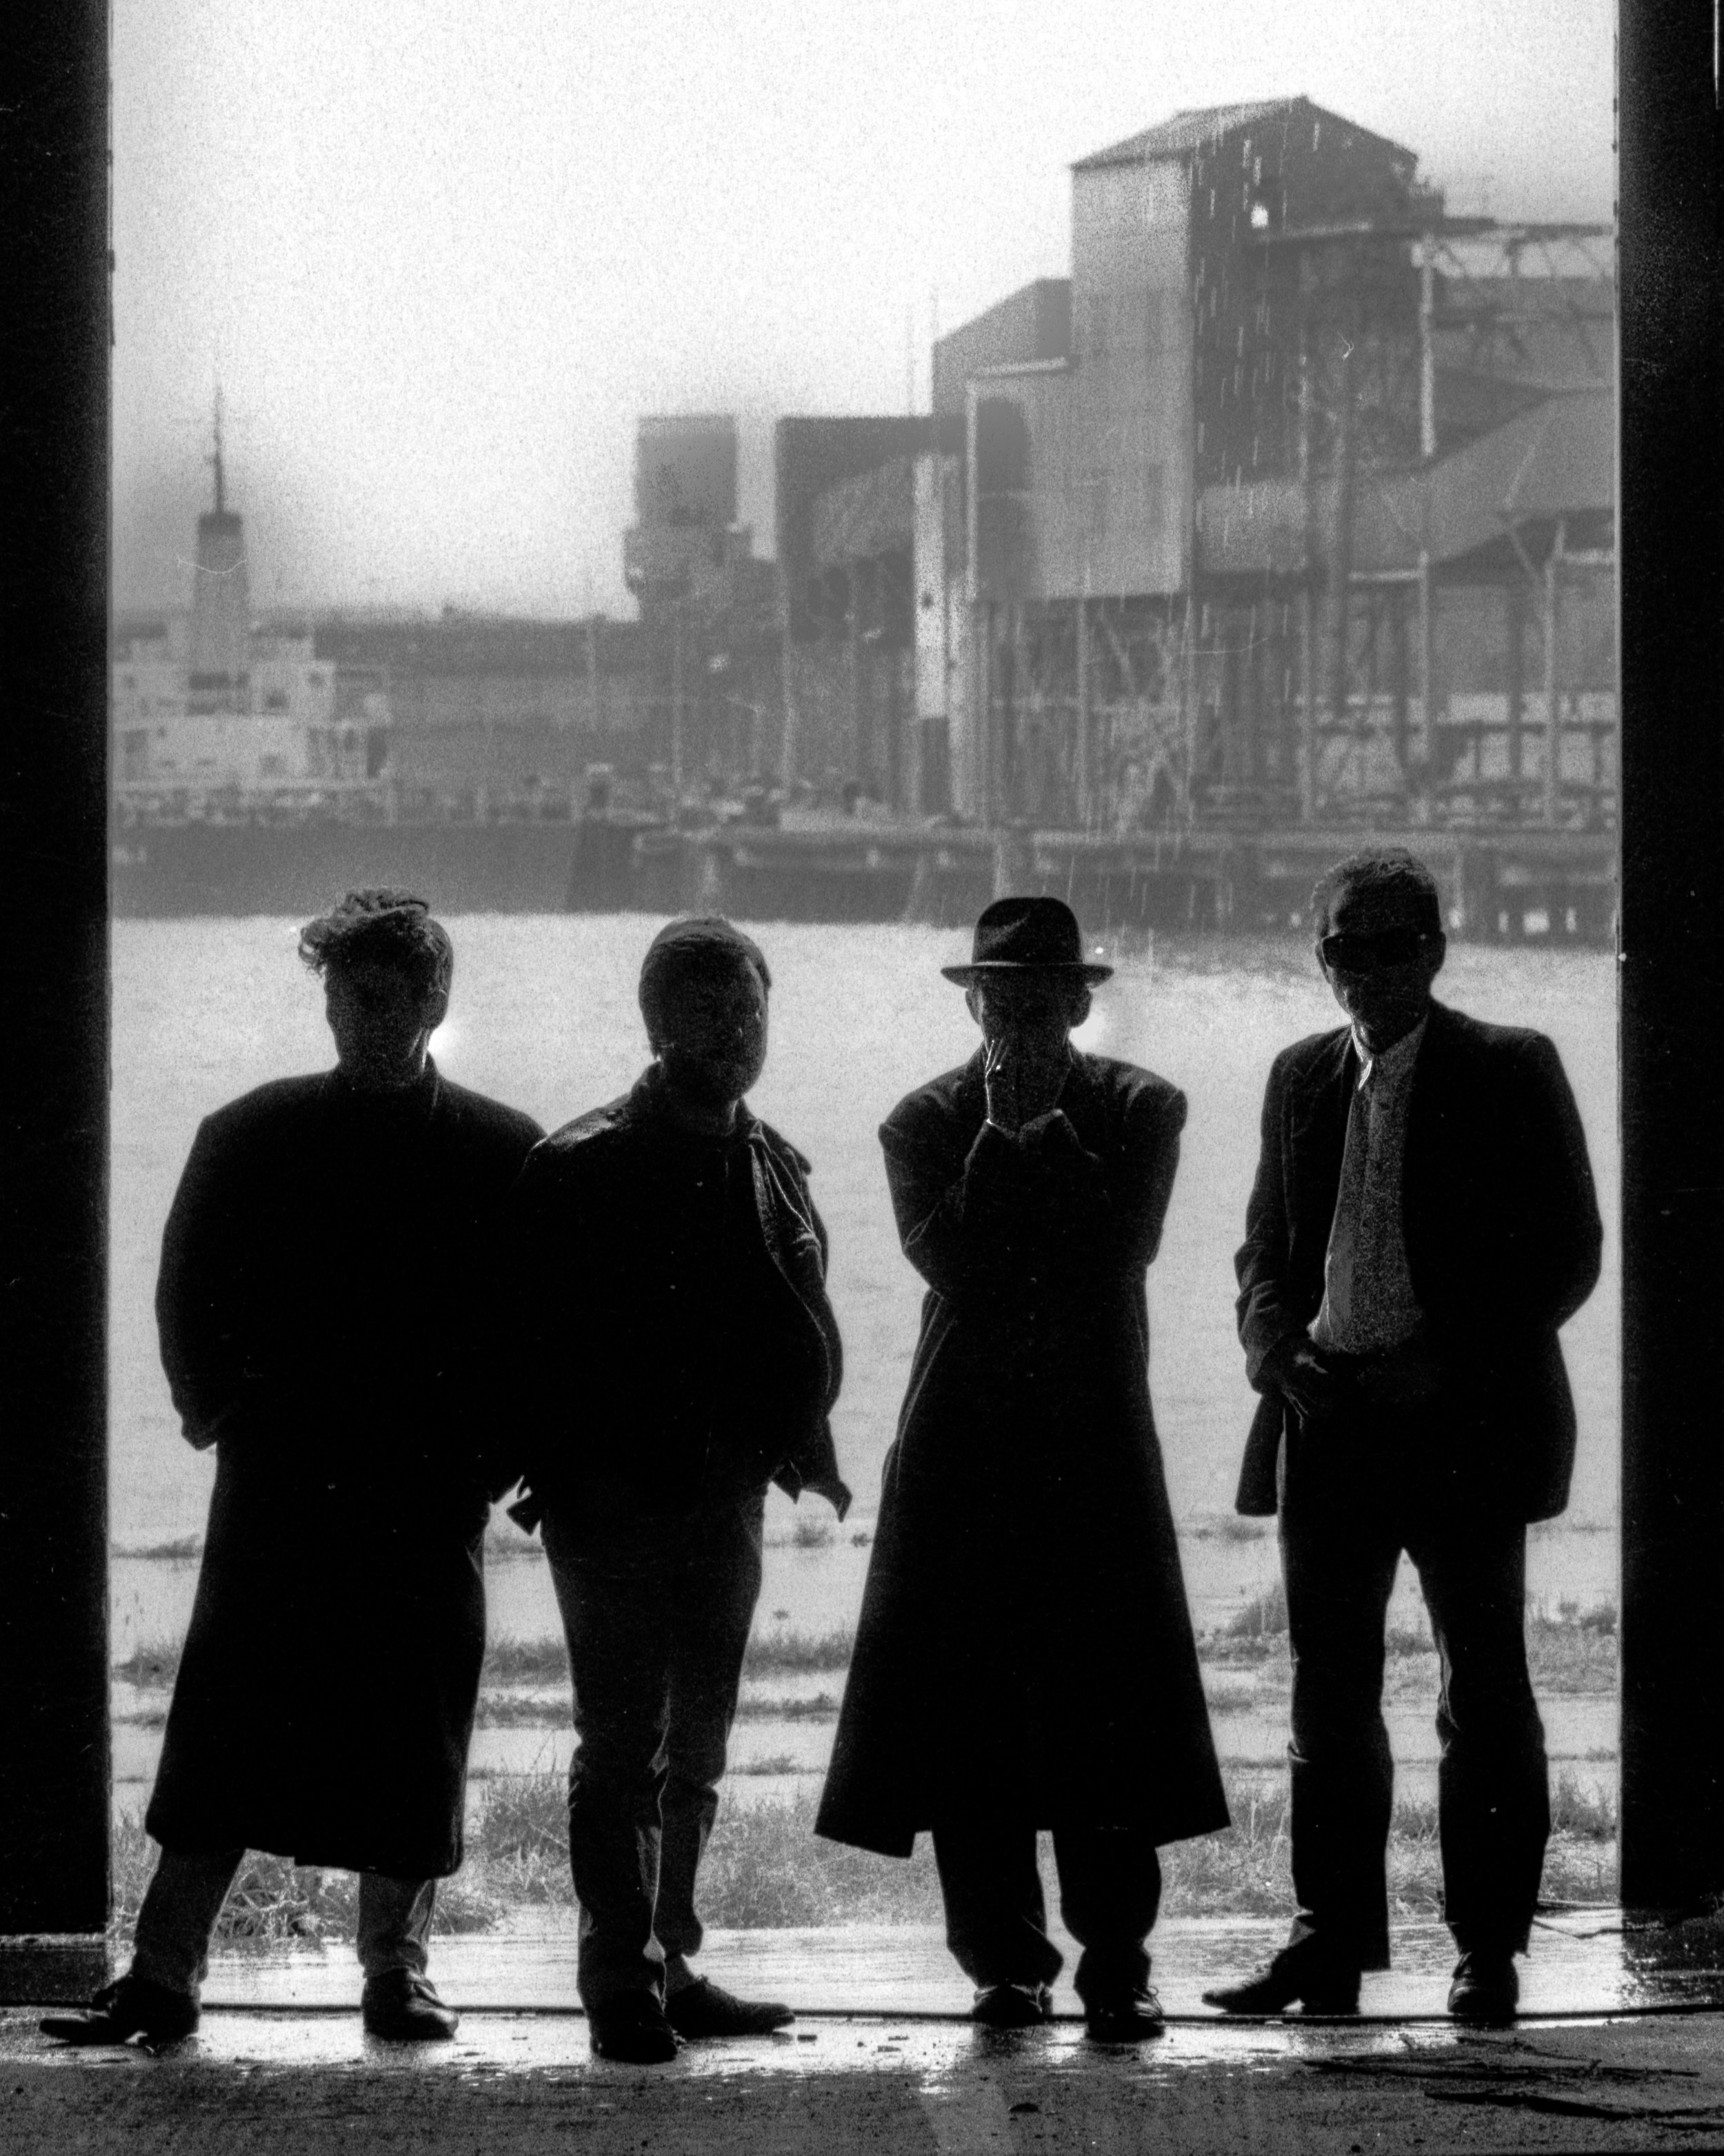 """Cover shot for the re-issue of """"Ghostown"""". You can see the rain in the background."""